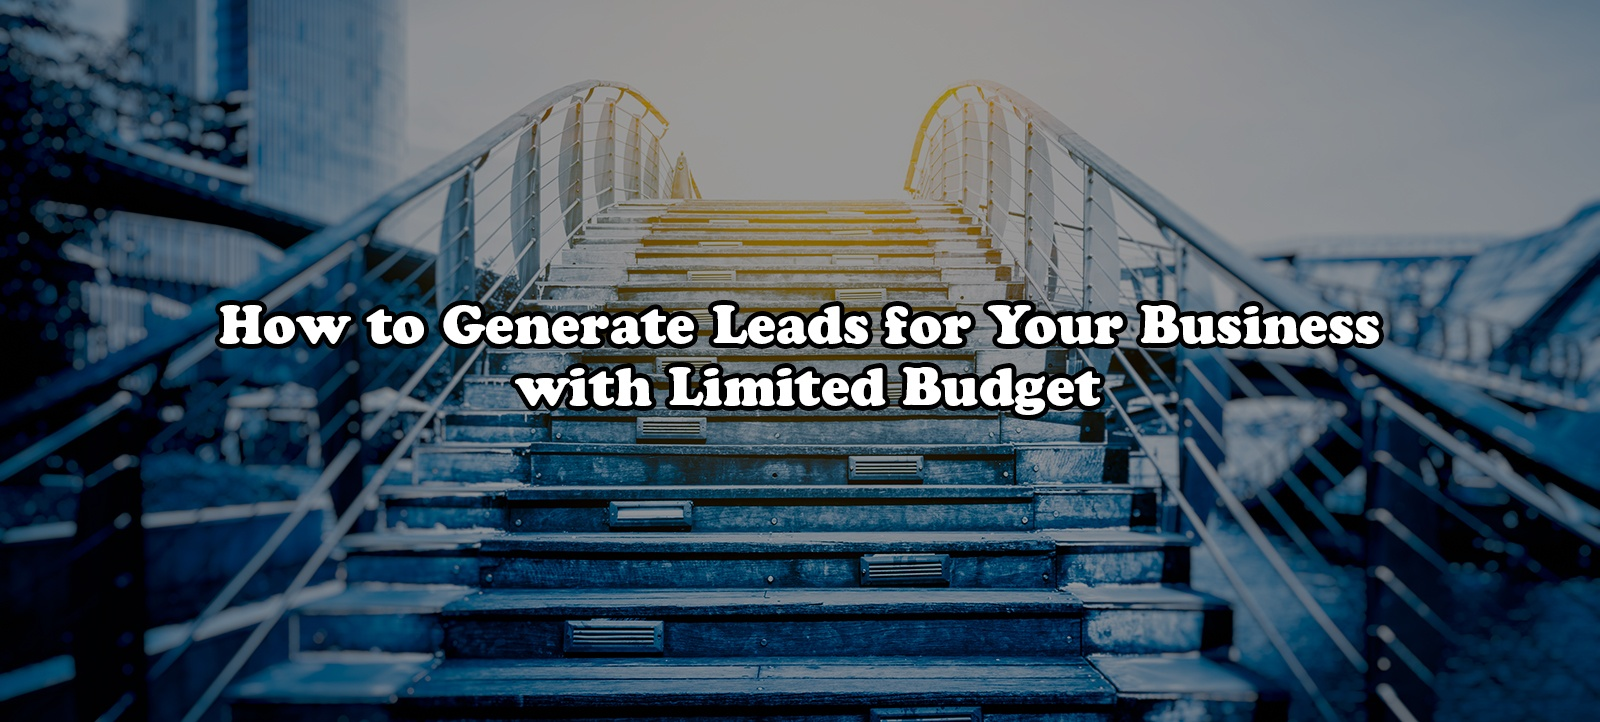 How to generate leads for your business with limited budget